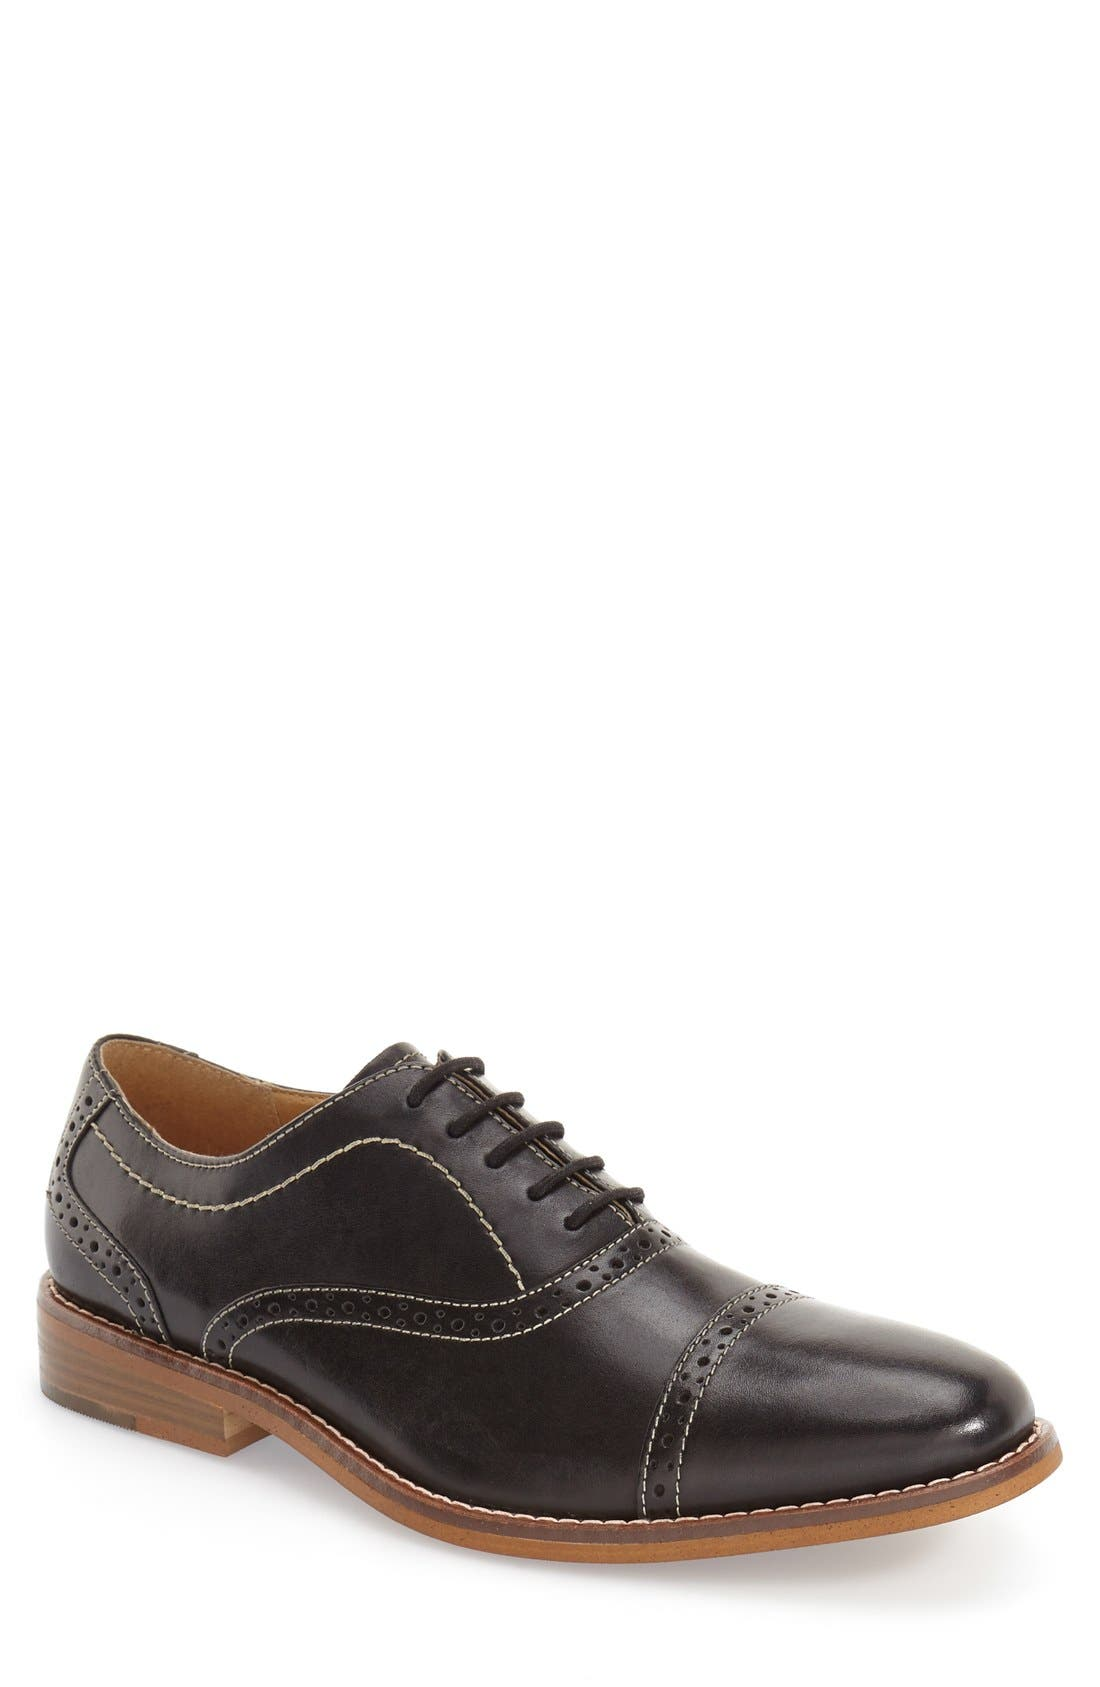 G.H. Bass & Co. 'Carnell' Cap Toe Oxford (Men)